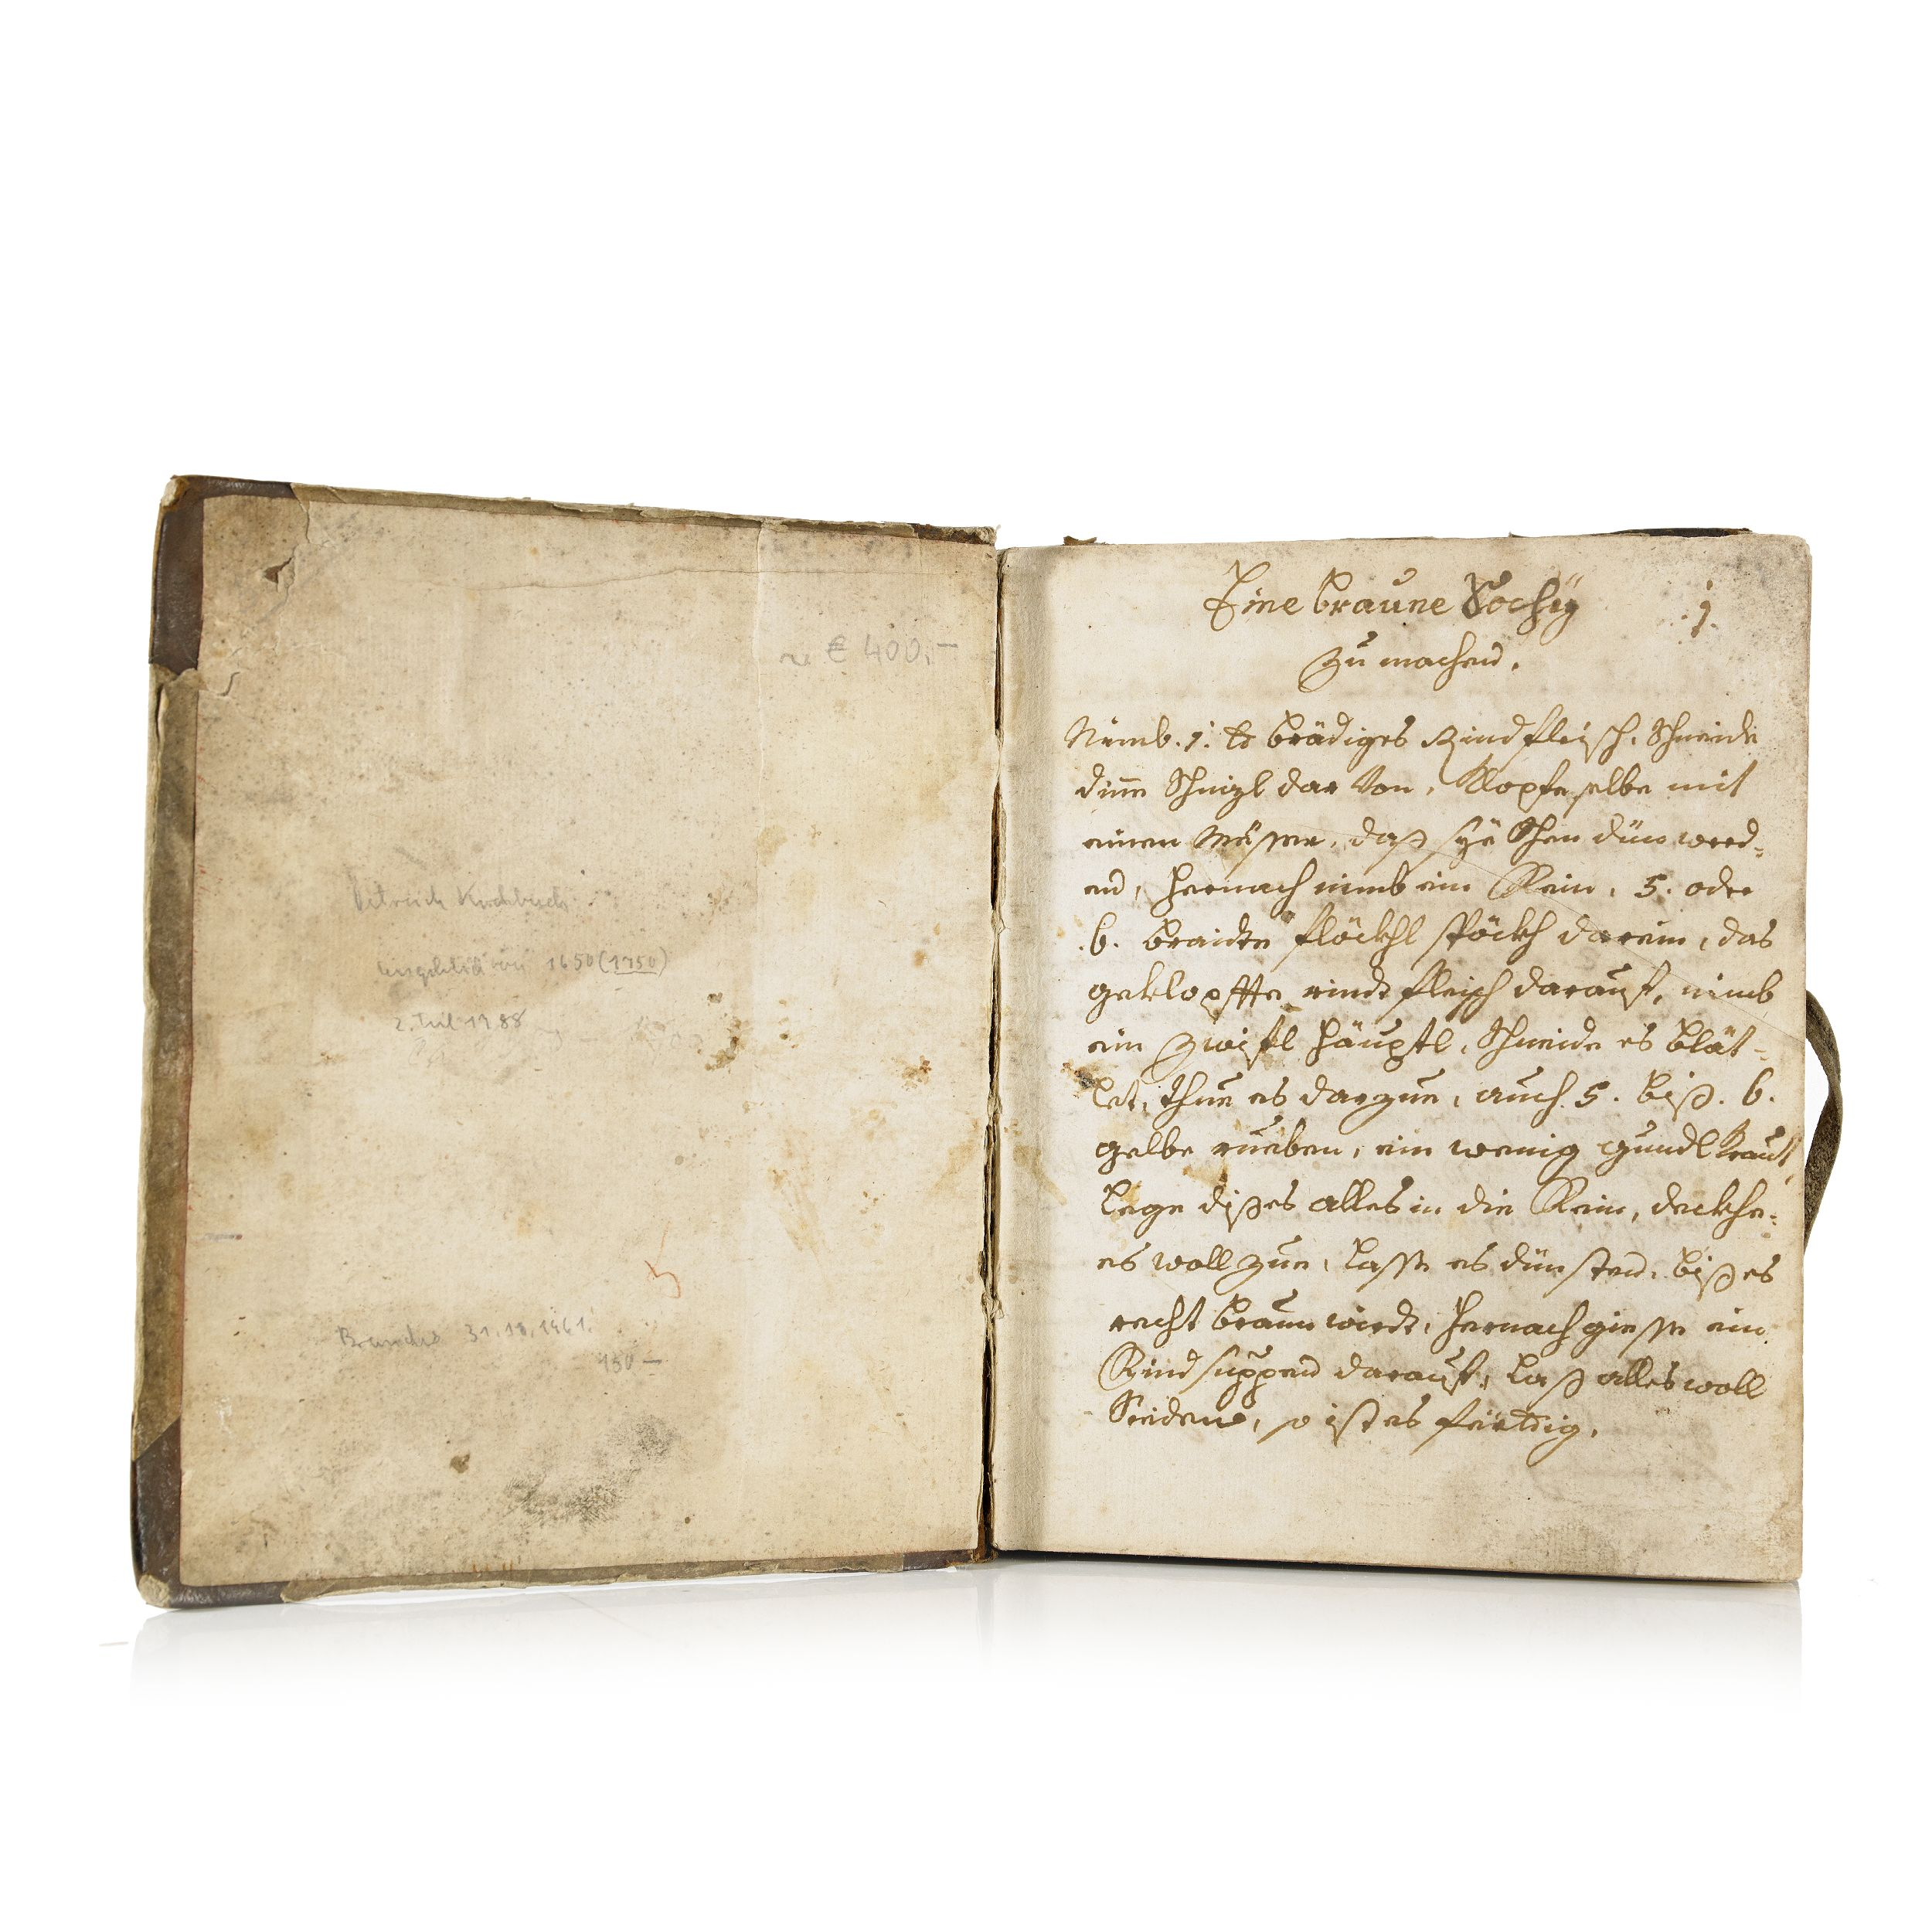 Manuscript on cookery